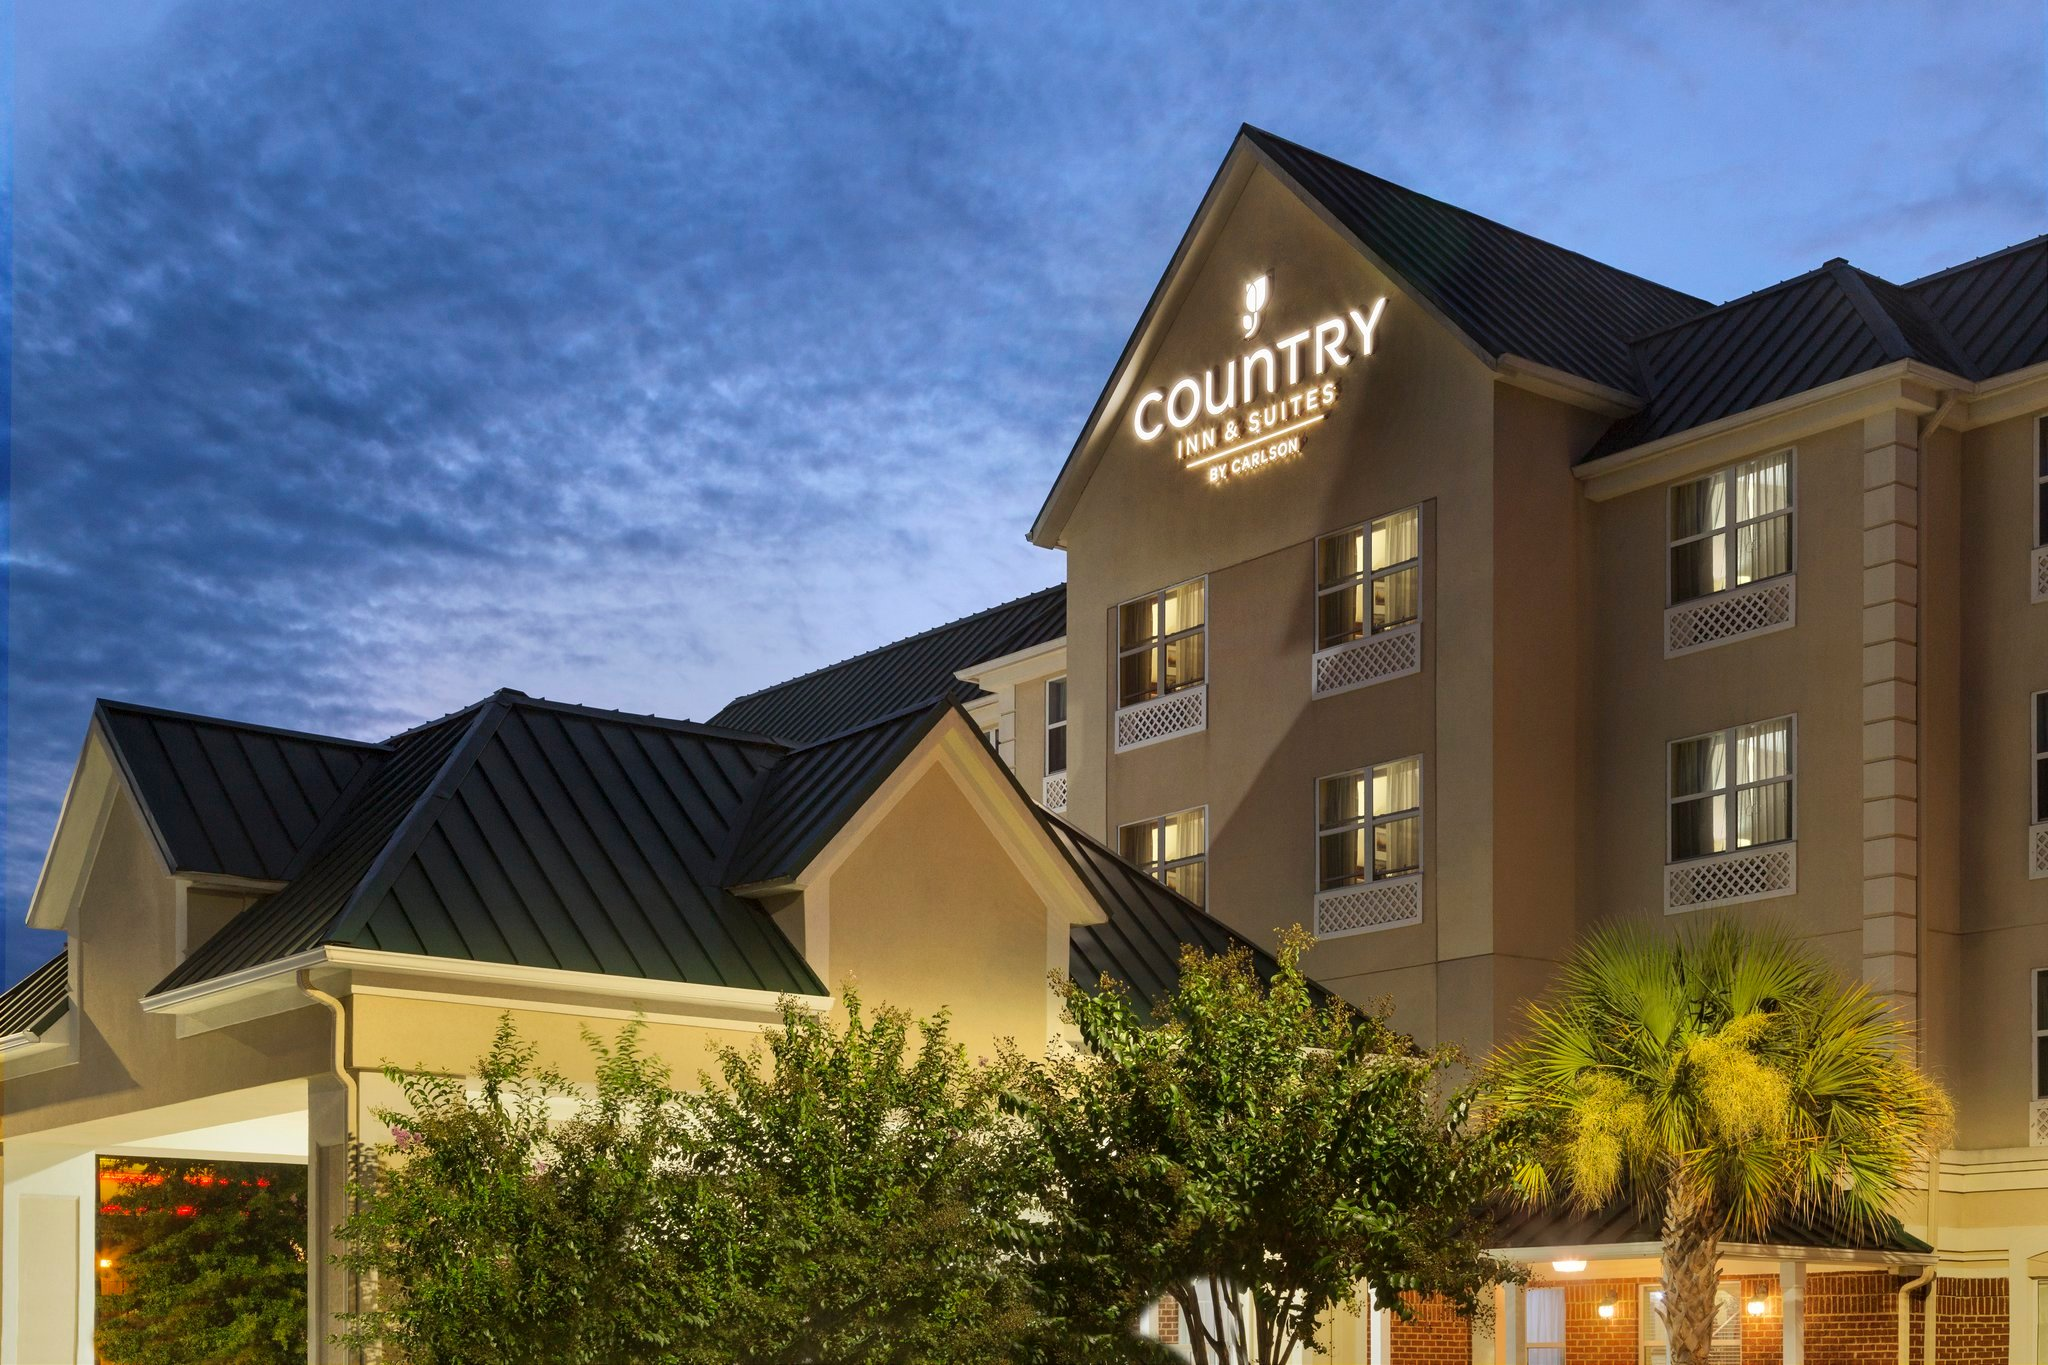 Country Inn & Suites By Carlson, Macon North